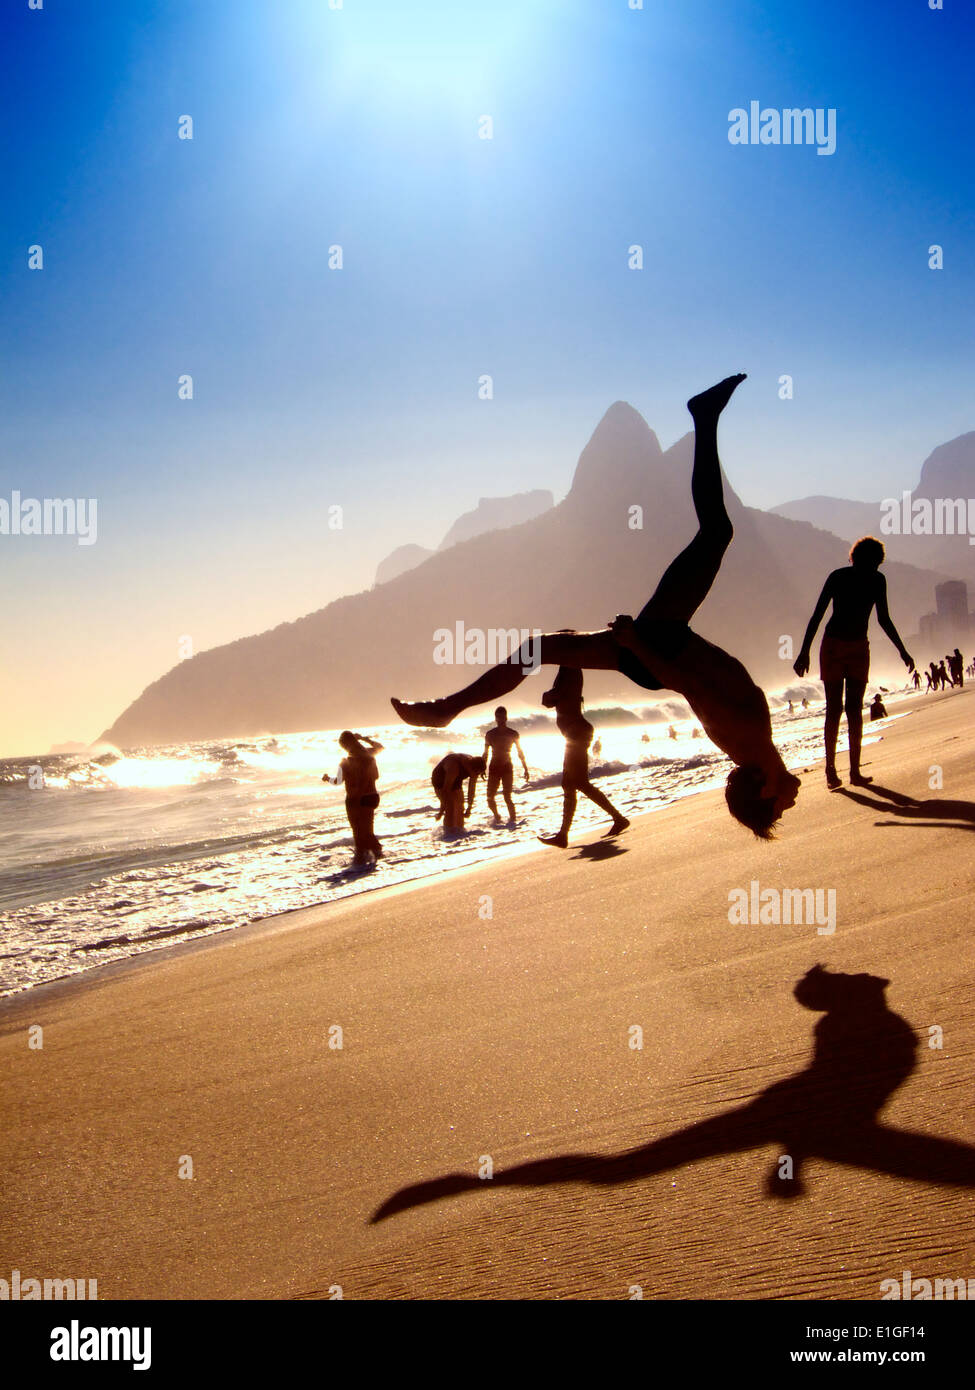 7a7d8144878c2a Silhouette of someone doing a flip above sunset beach scene at Ipanema Beach  Rio de Janeiro Brazil